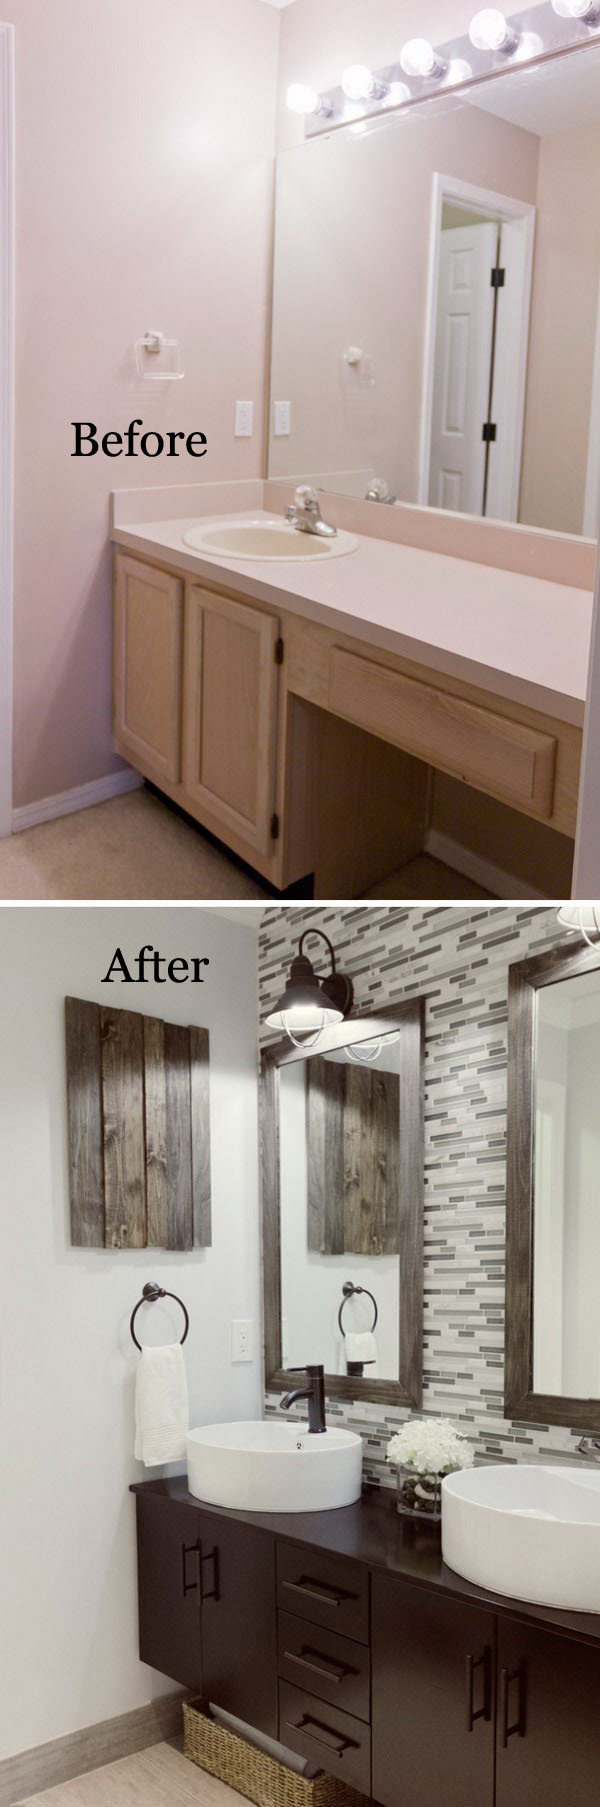 Before and after 20 awesome bathroom makeovers hative for Bathroom remodelling bathroom renovations